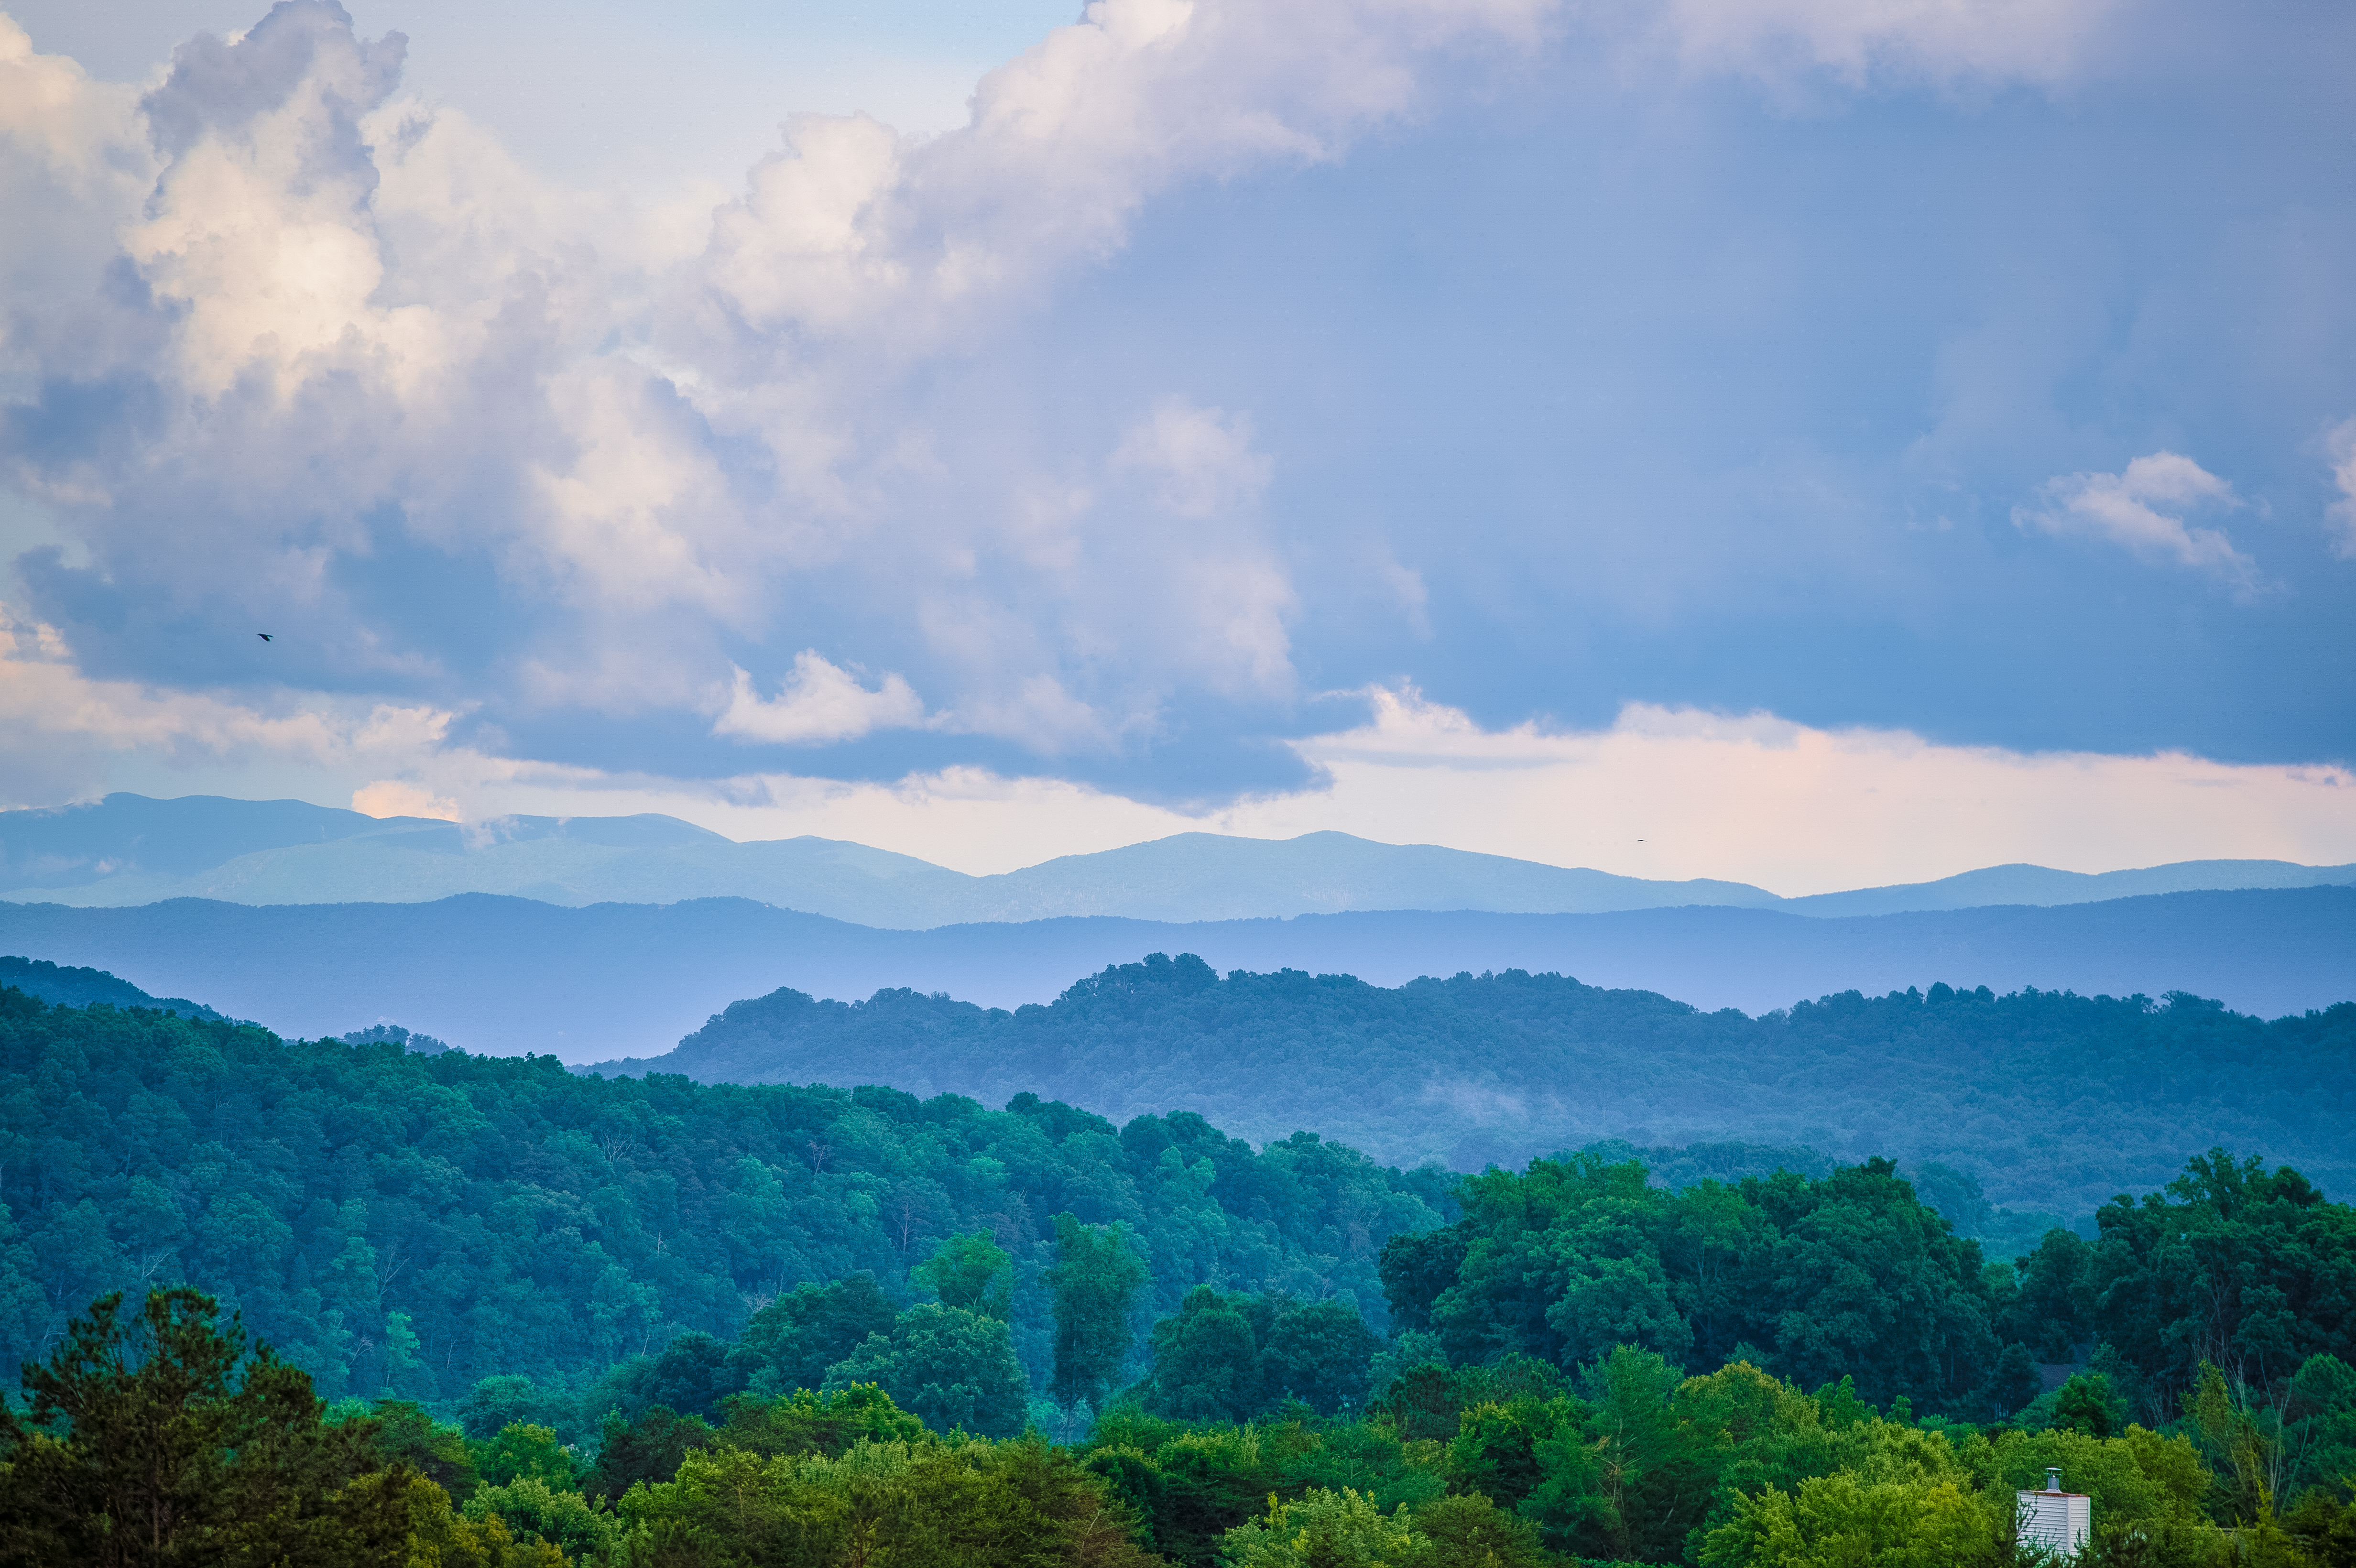 31. The Great Smoky Mountains National Park is in your backyard